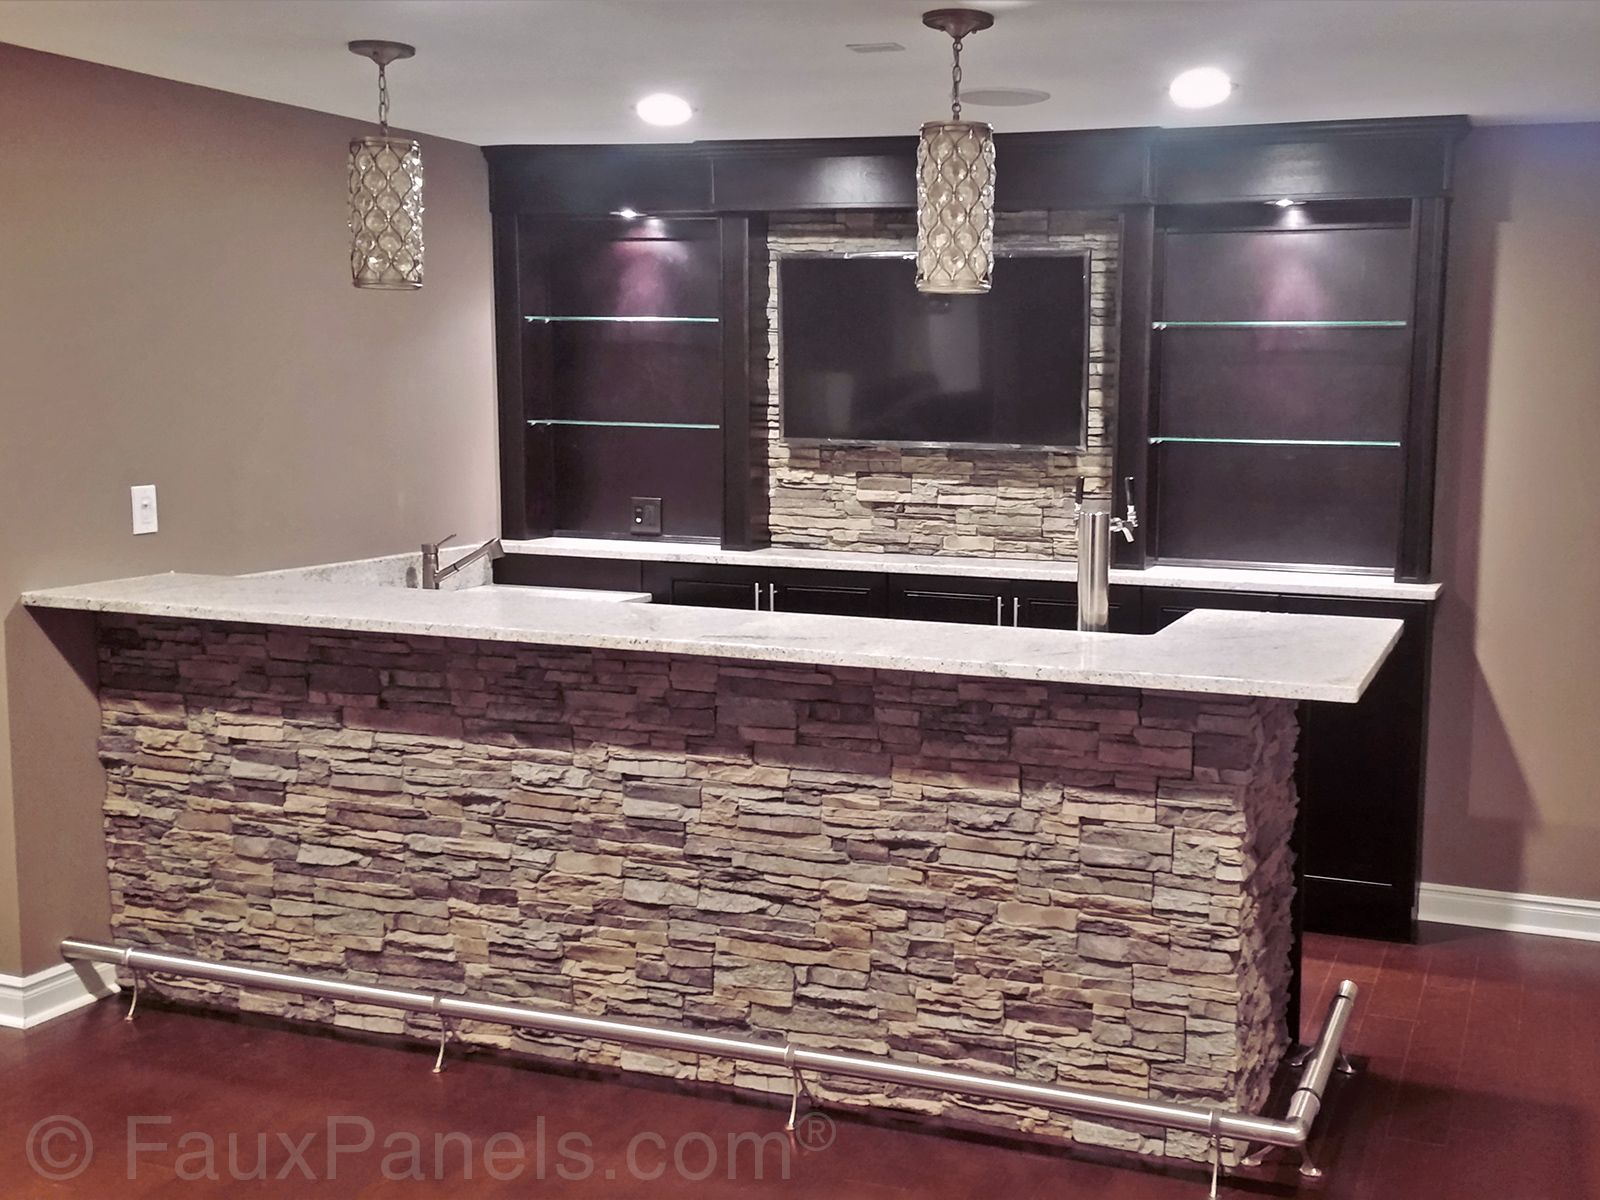 Beau 34+ Awesome Basement Bar Ideas And How To Make It With Low Bugdet